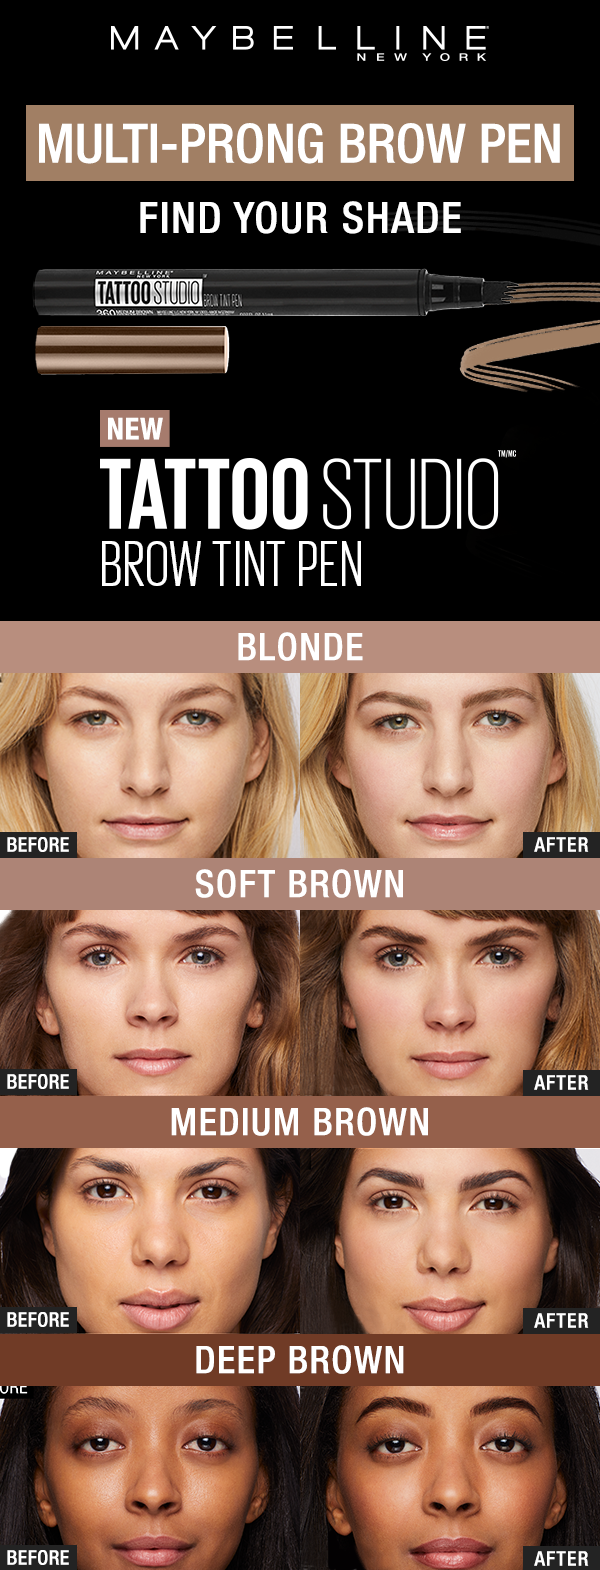 be910579452 Want next-level brows? Try our new TattooStudio Brow Tint Pens. With the